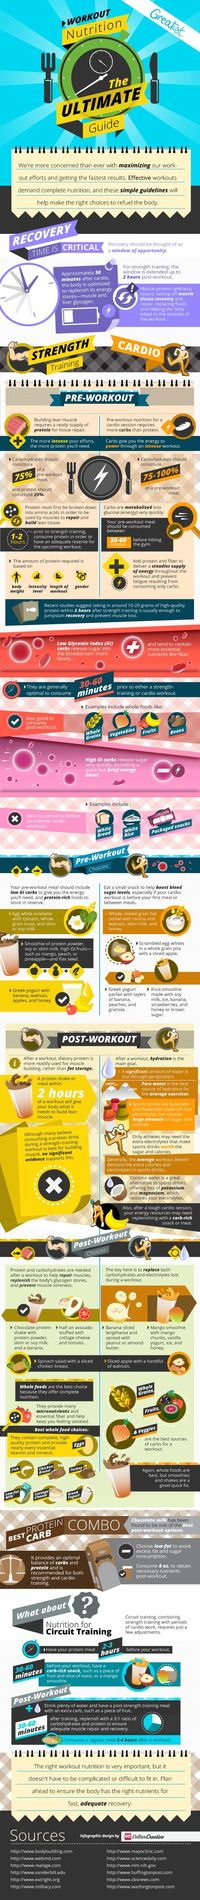 Guide to Workout Nutrition